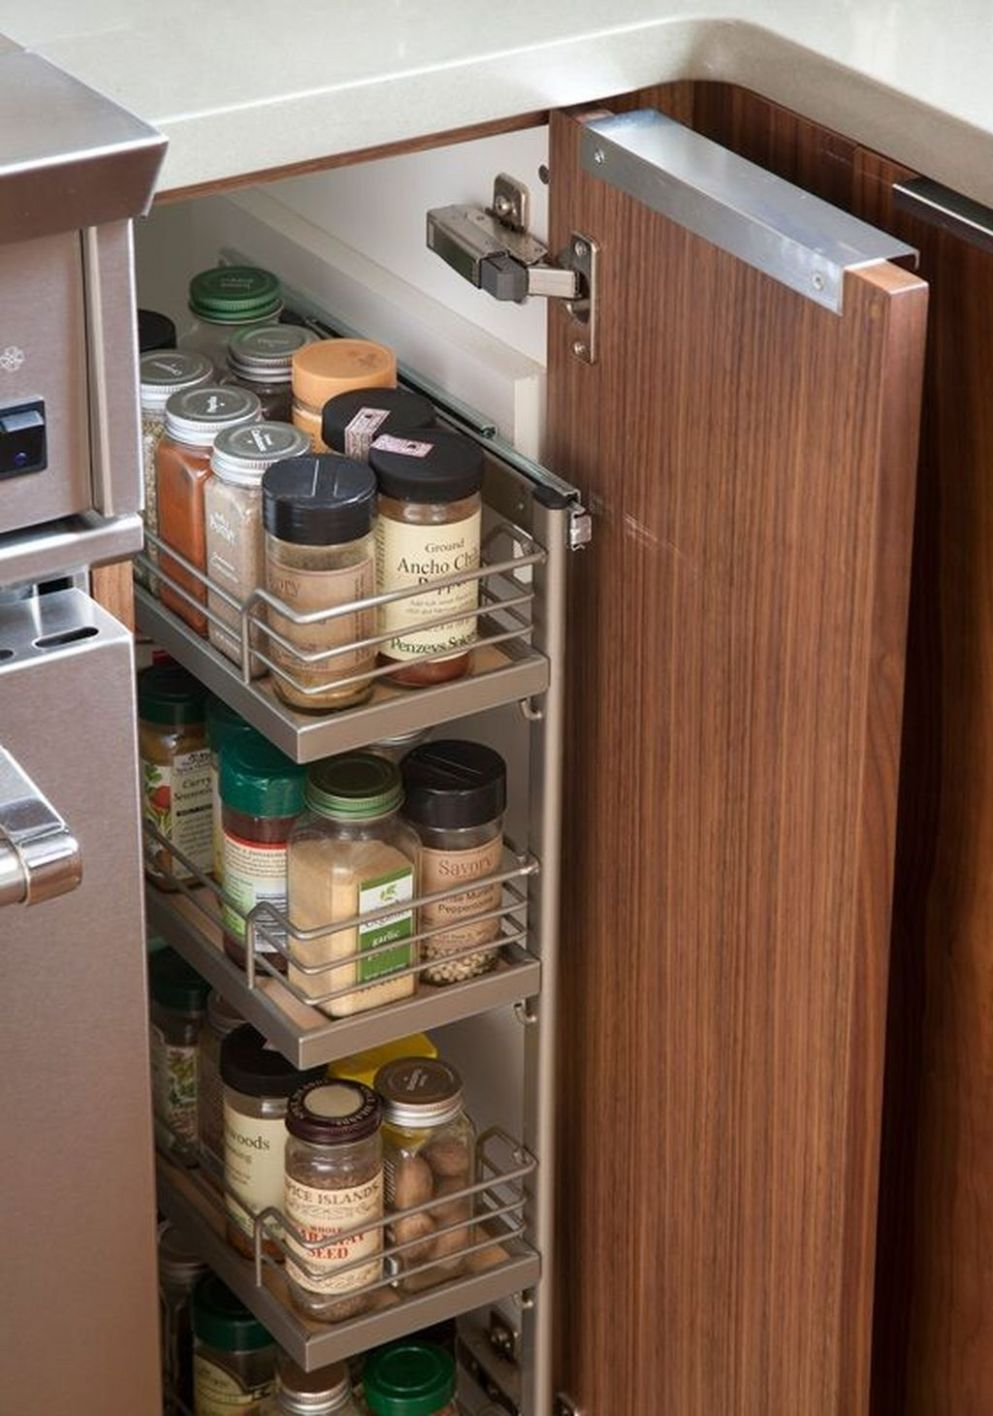 10+ Luxury Kitchen Storage Ideas To Save Your Space | Diy kitchen ..